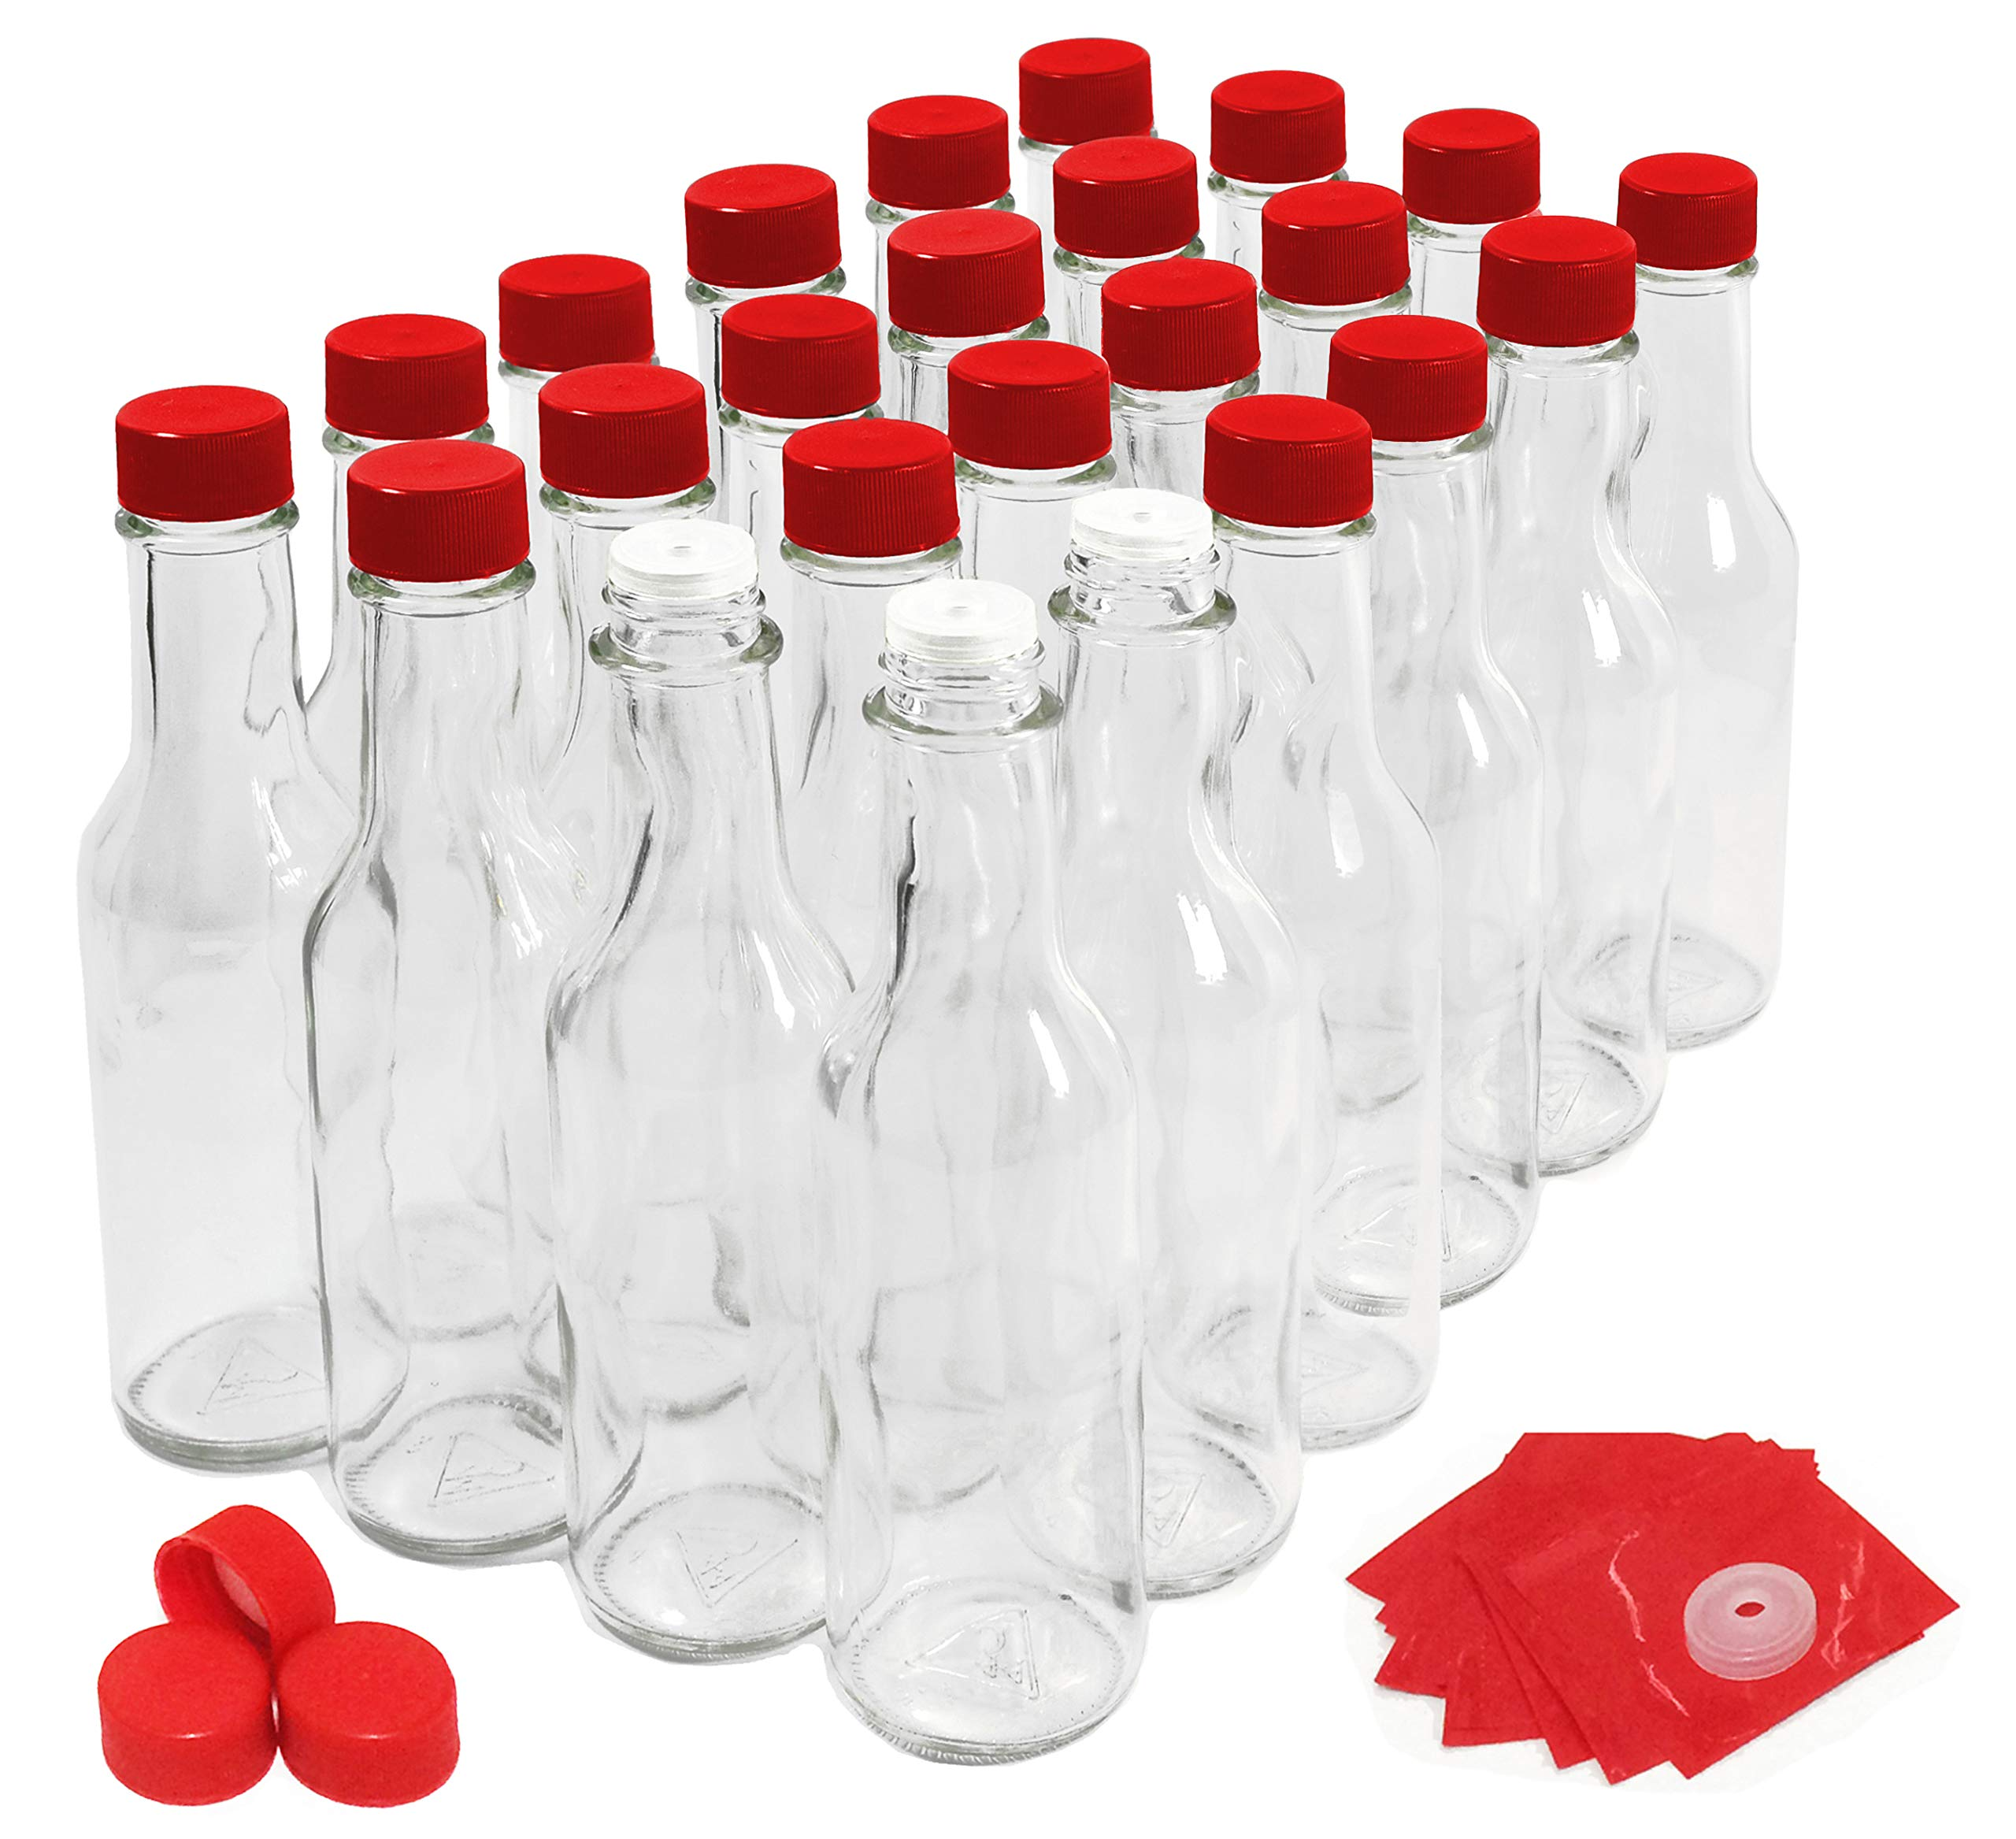 Hot Sauce Bottles with Red Caps & Shrink Bands, 5 Oz - Case of 24 by nicebottles